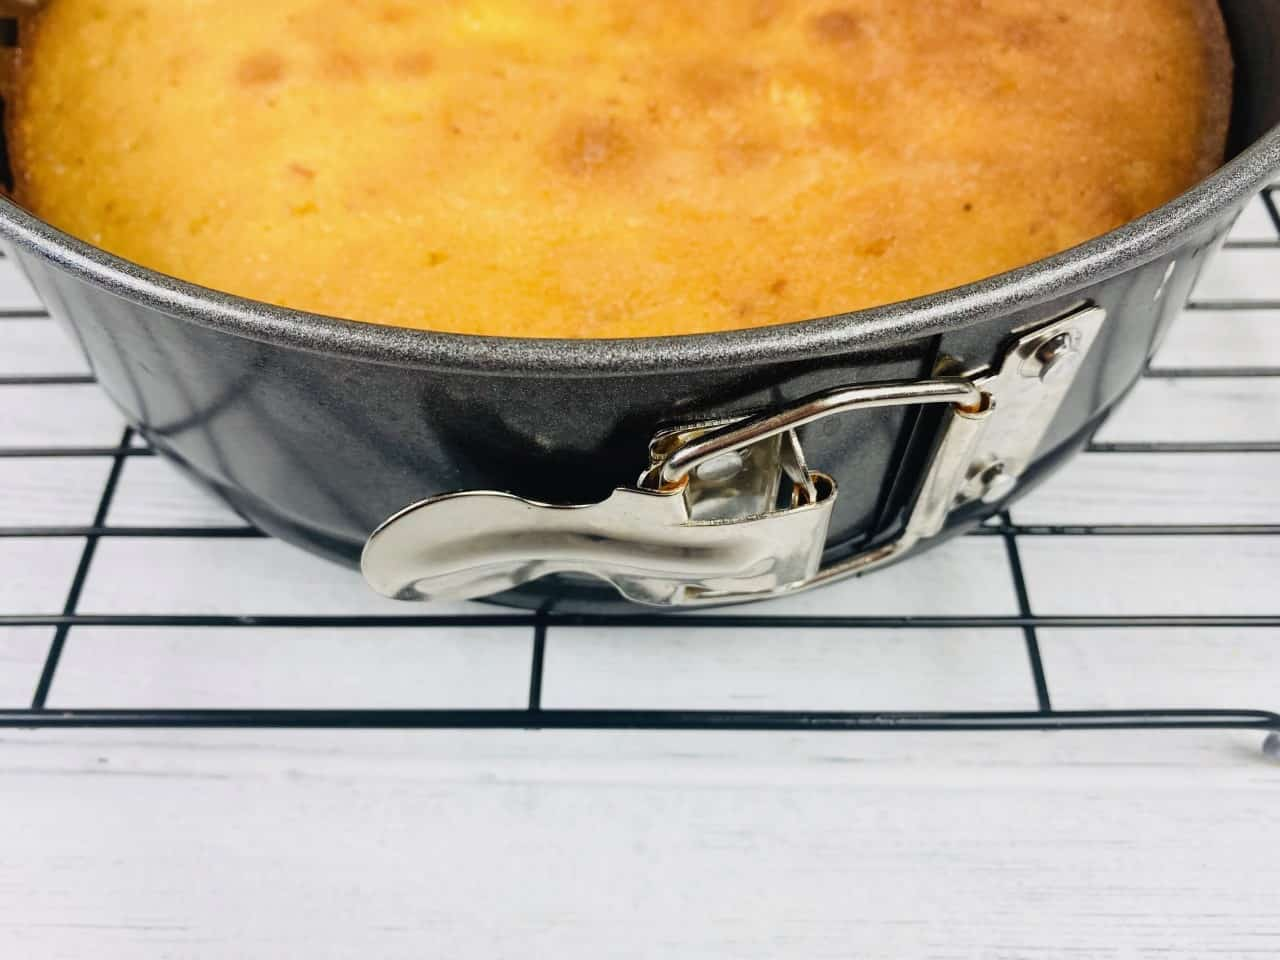 springform cake tin for lemon drizzle cake